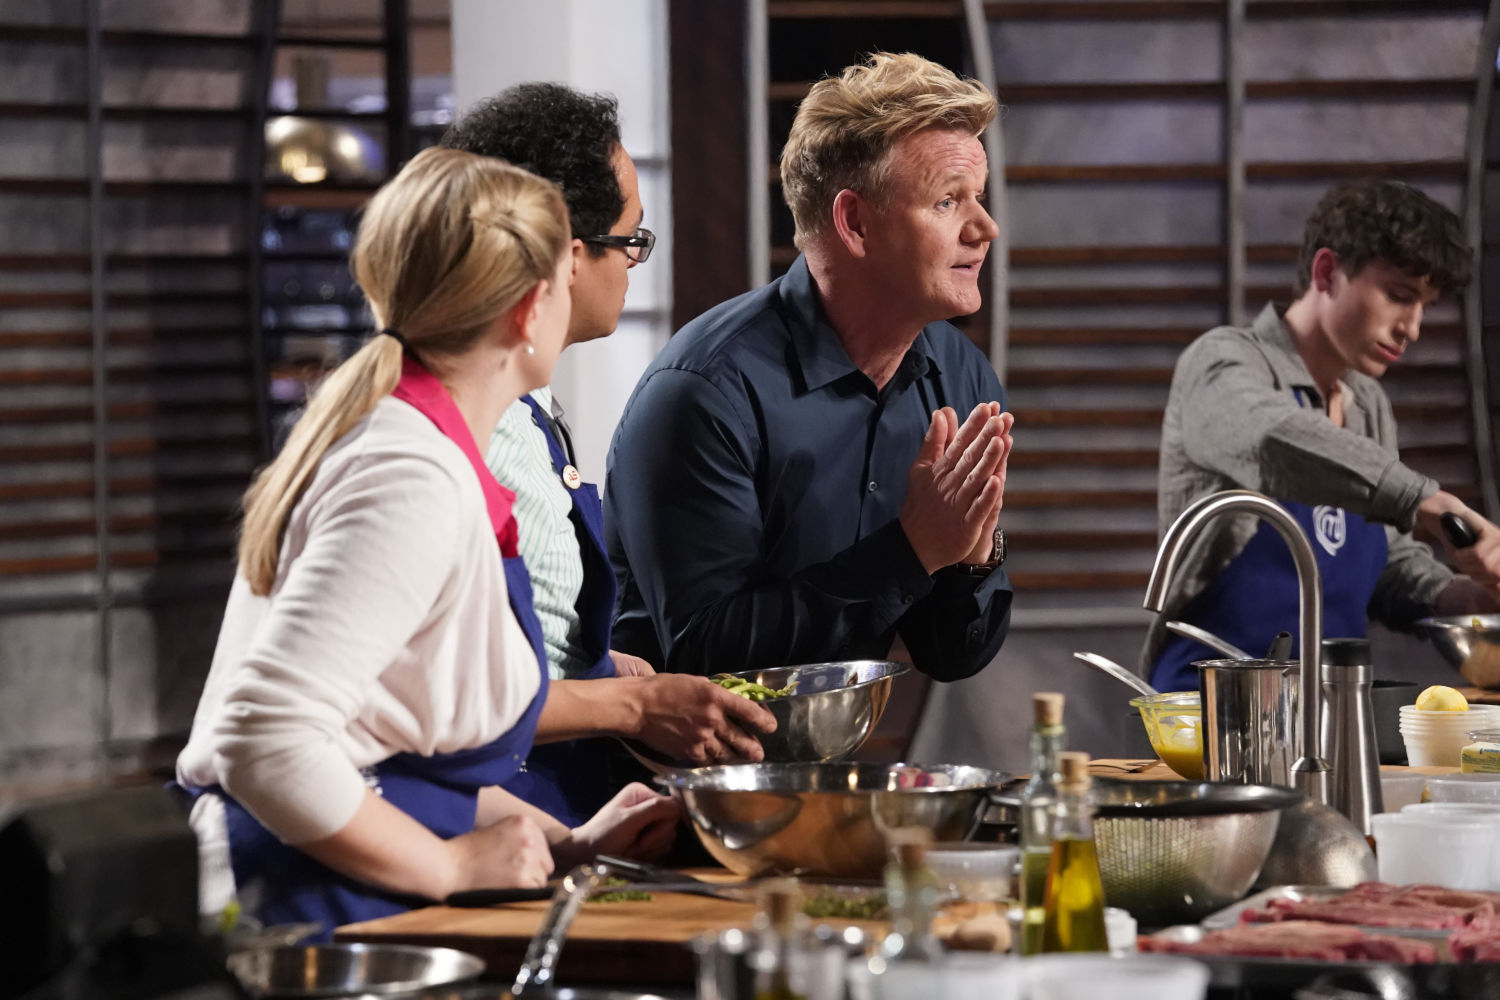 masterchef - photo #26